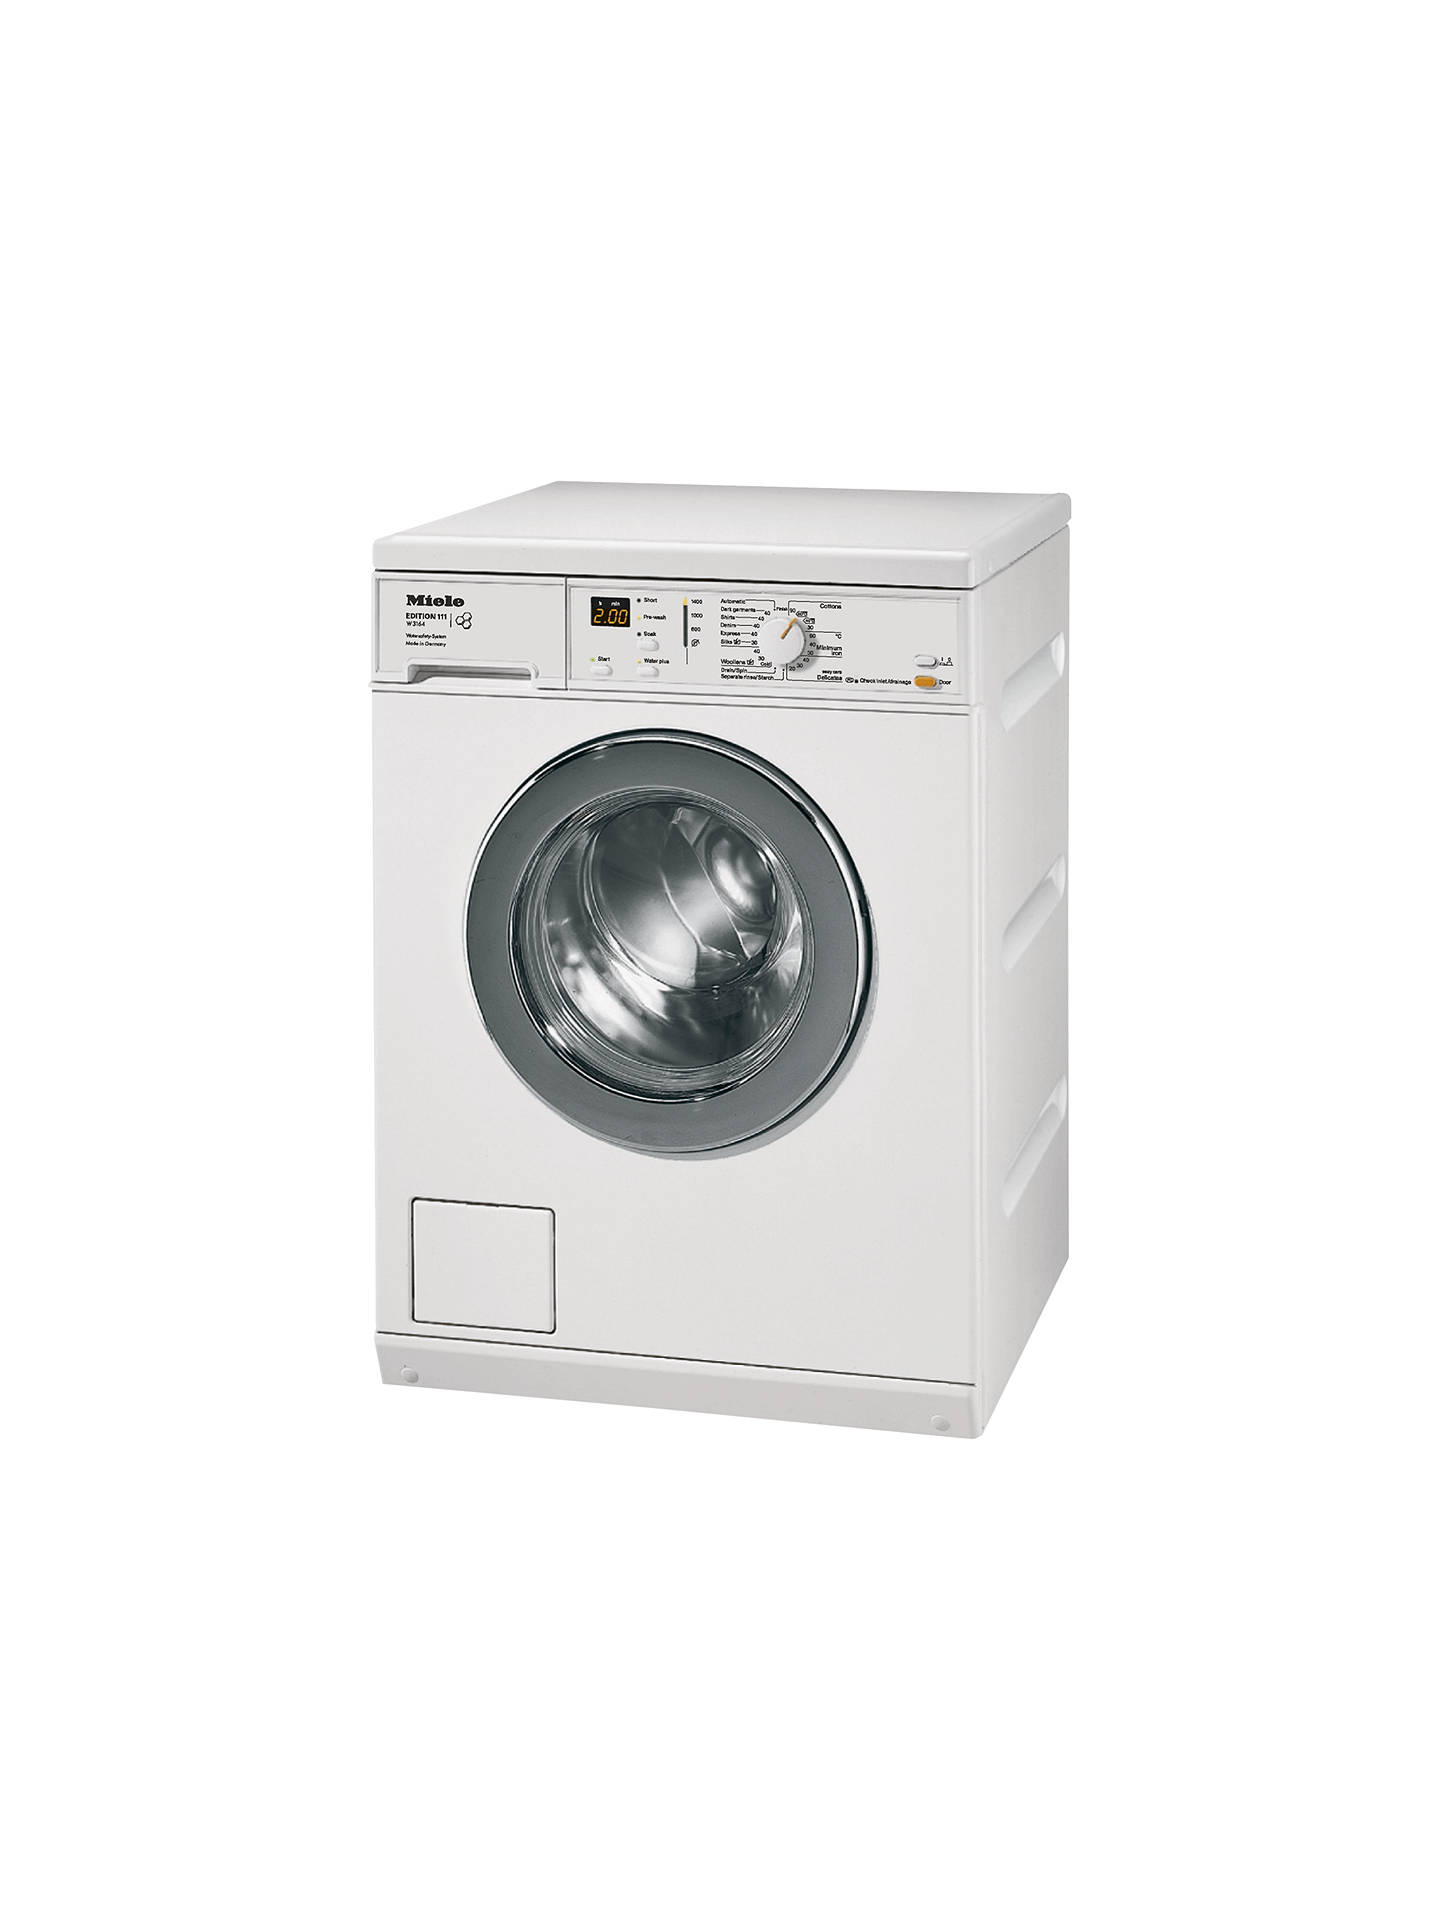 Spare Parts For Miele Washing Machines Newmotorjdi Co